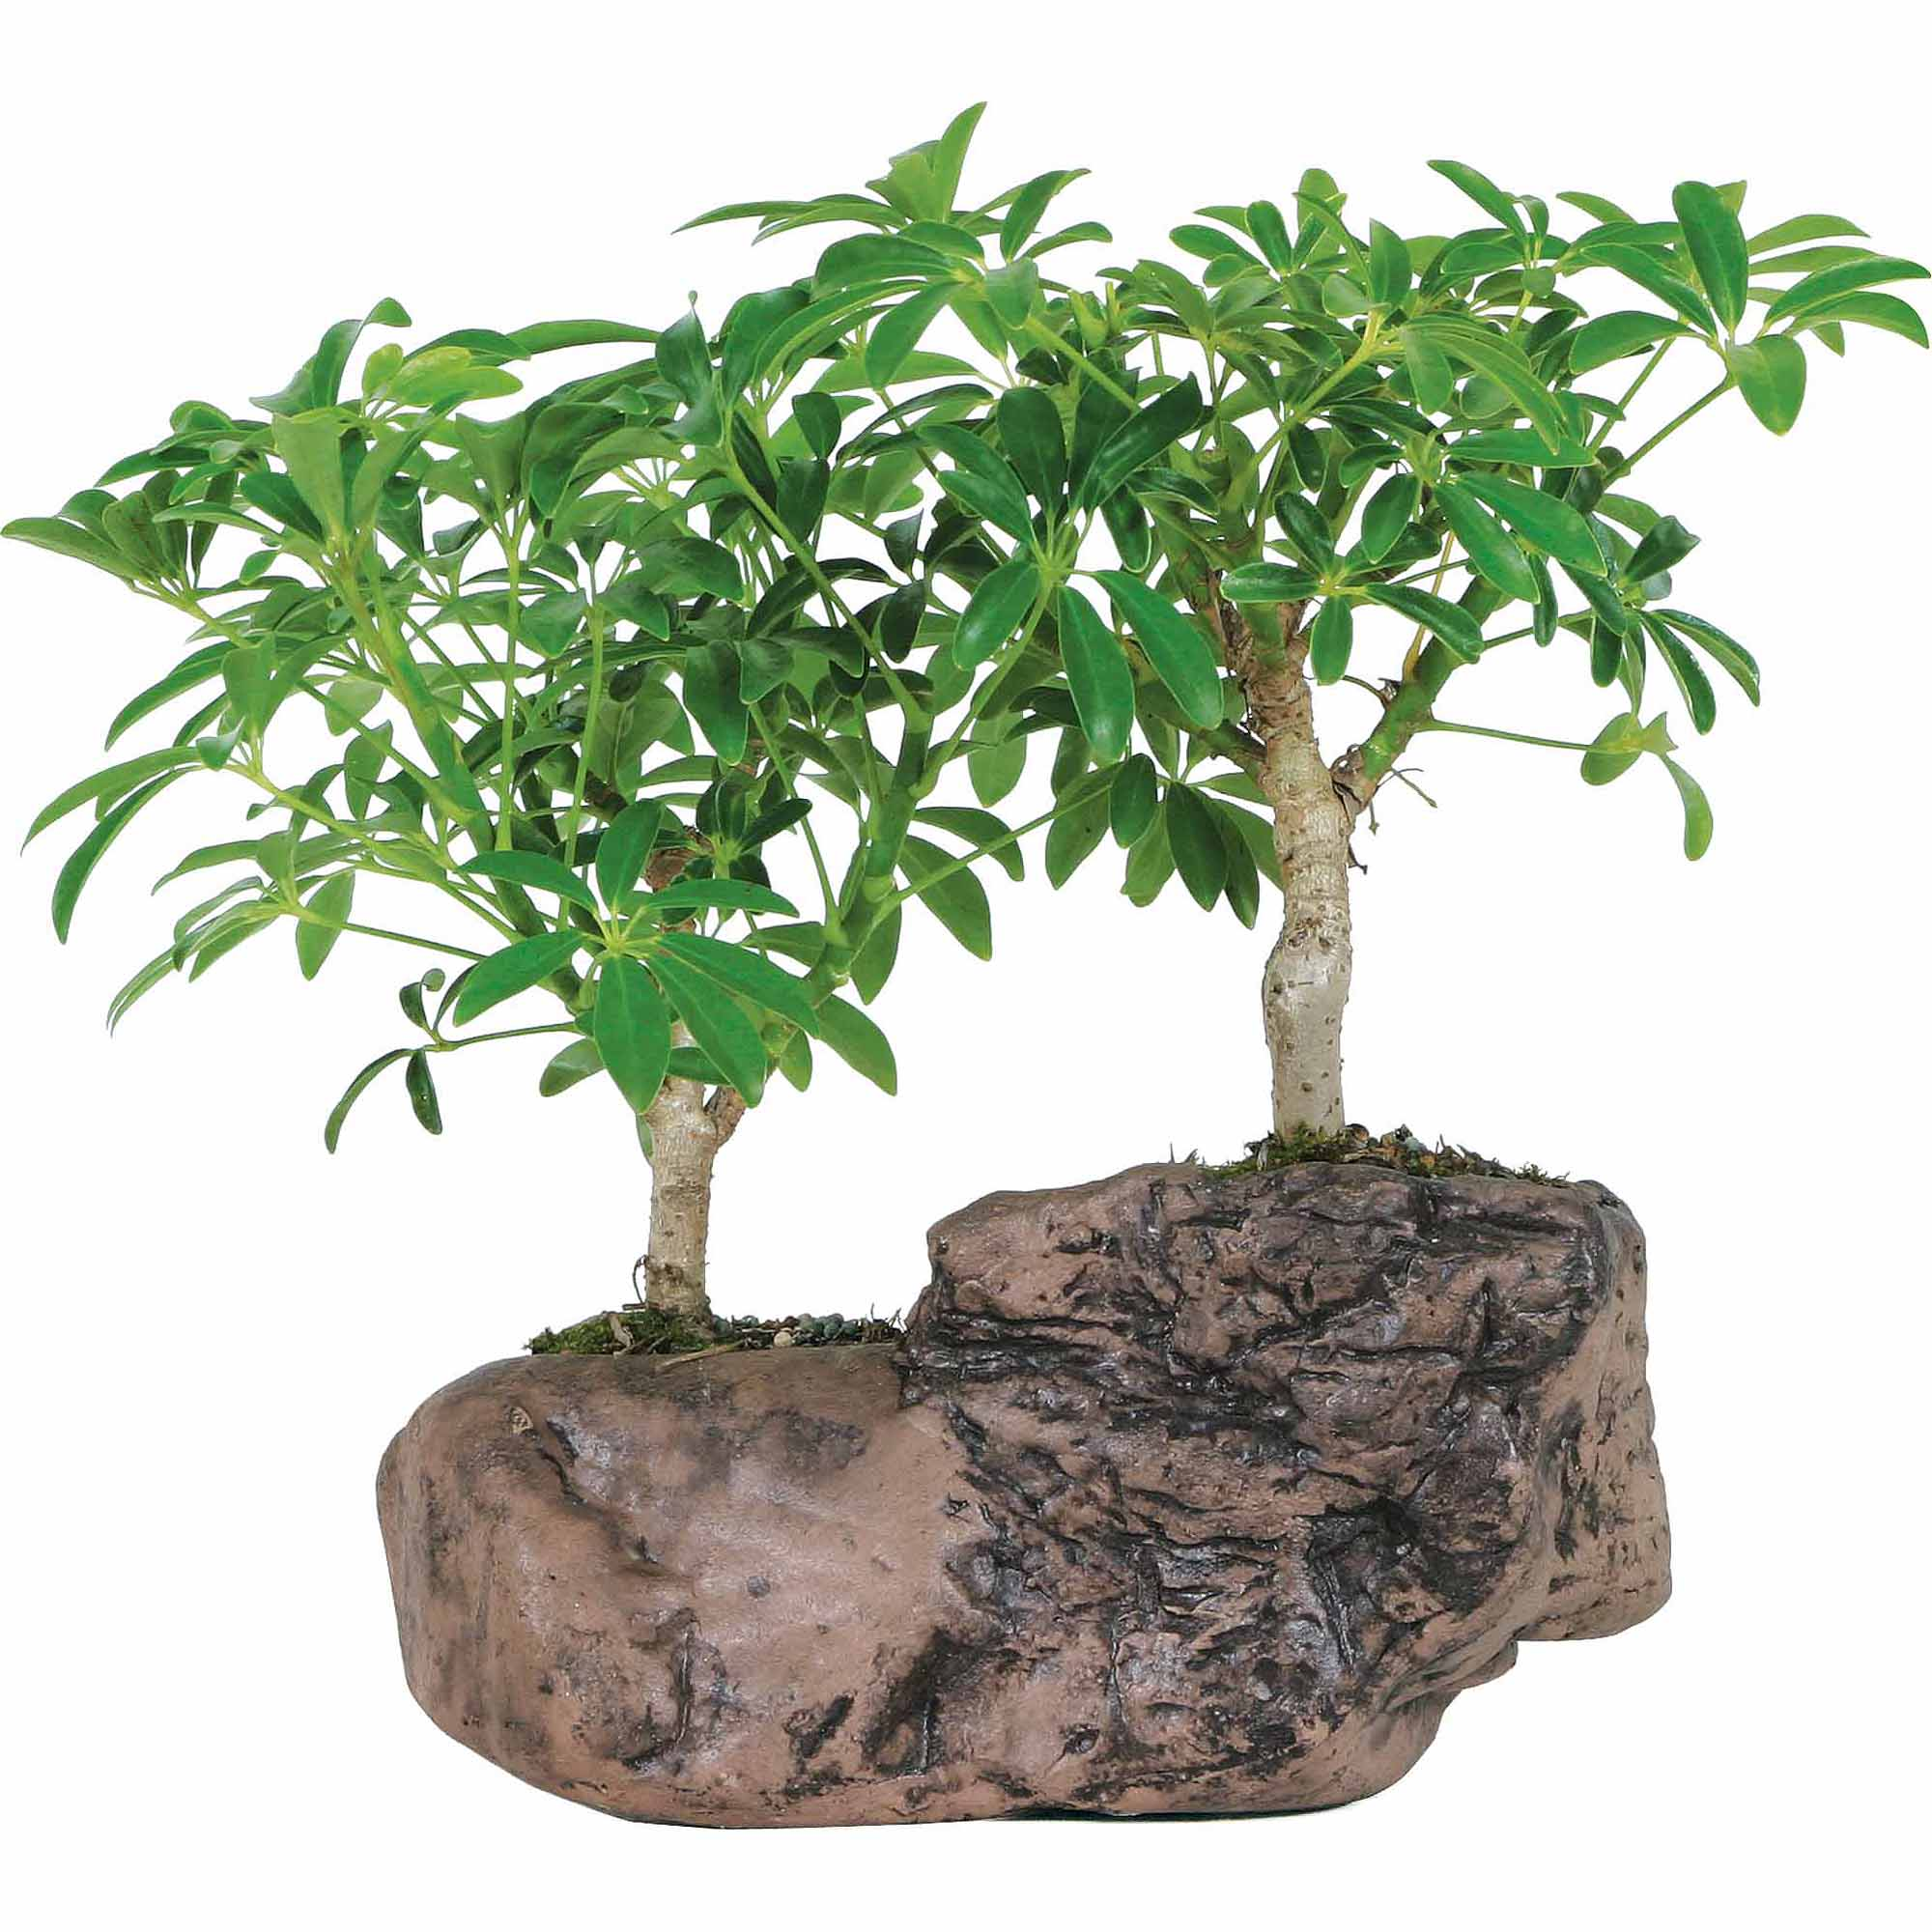 Brussel's Hawaiian Umbrella Bonsai Tree In Rock Pot by Brussel's Bonsai